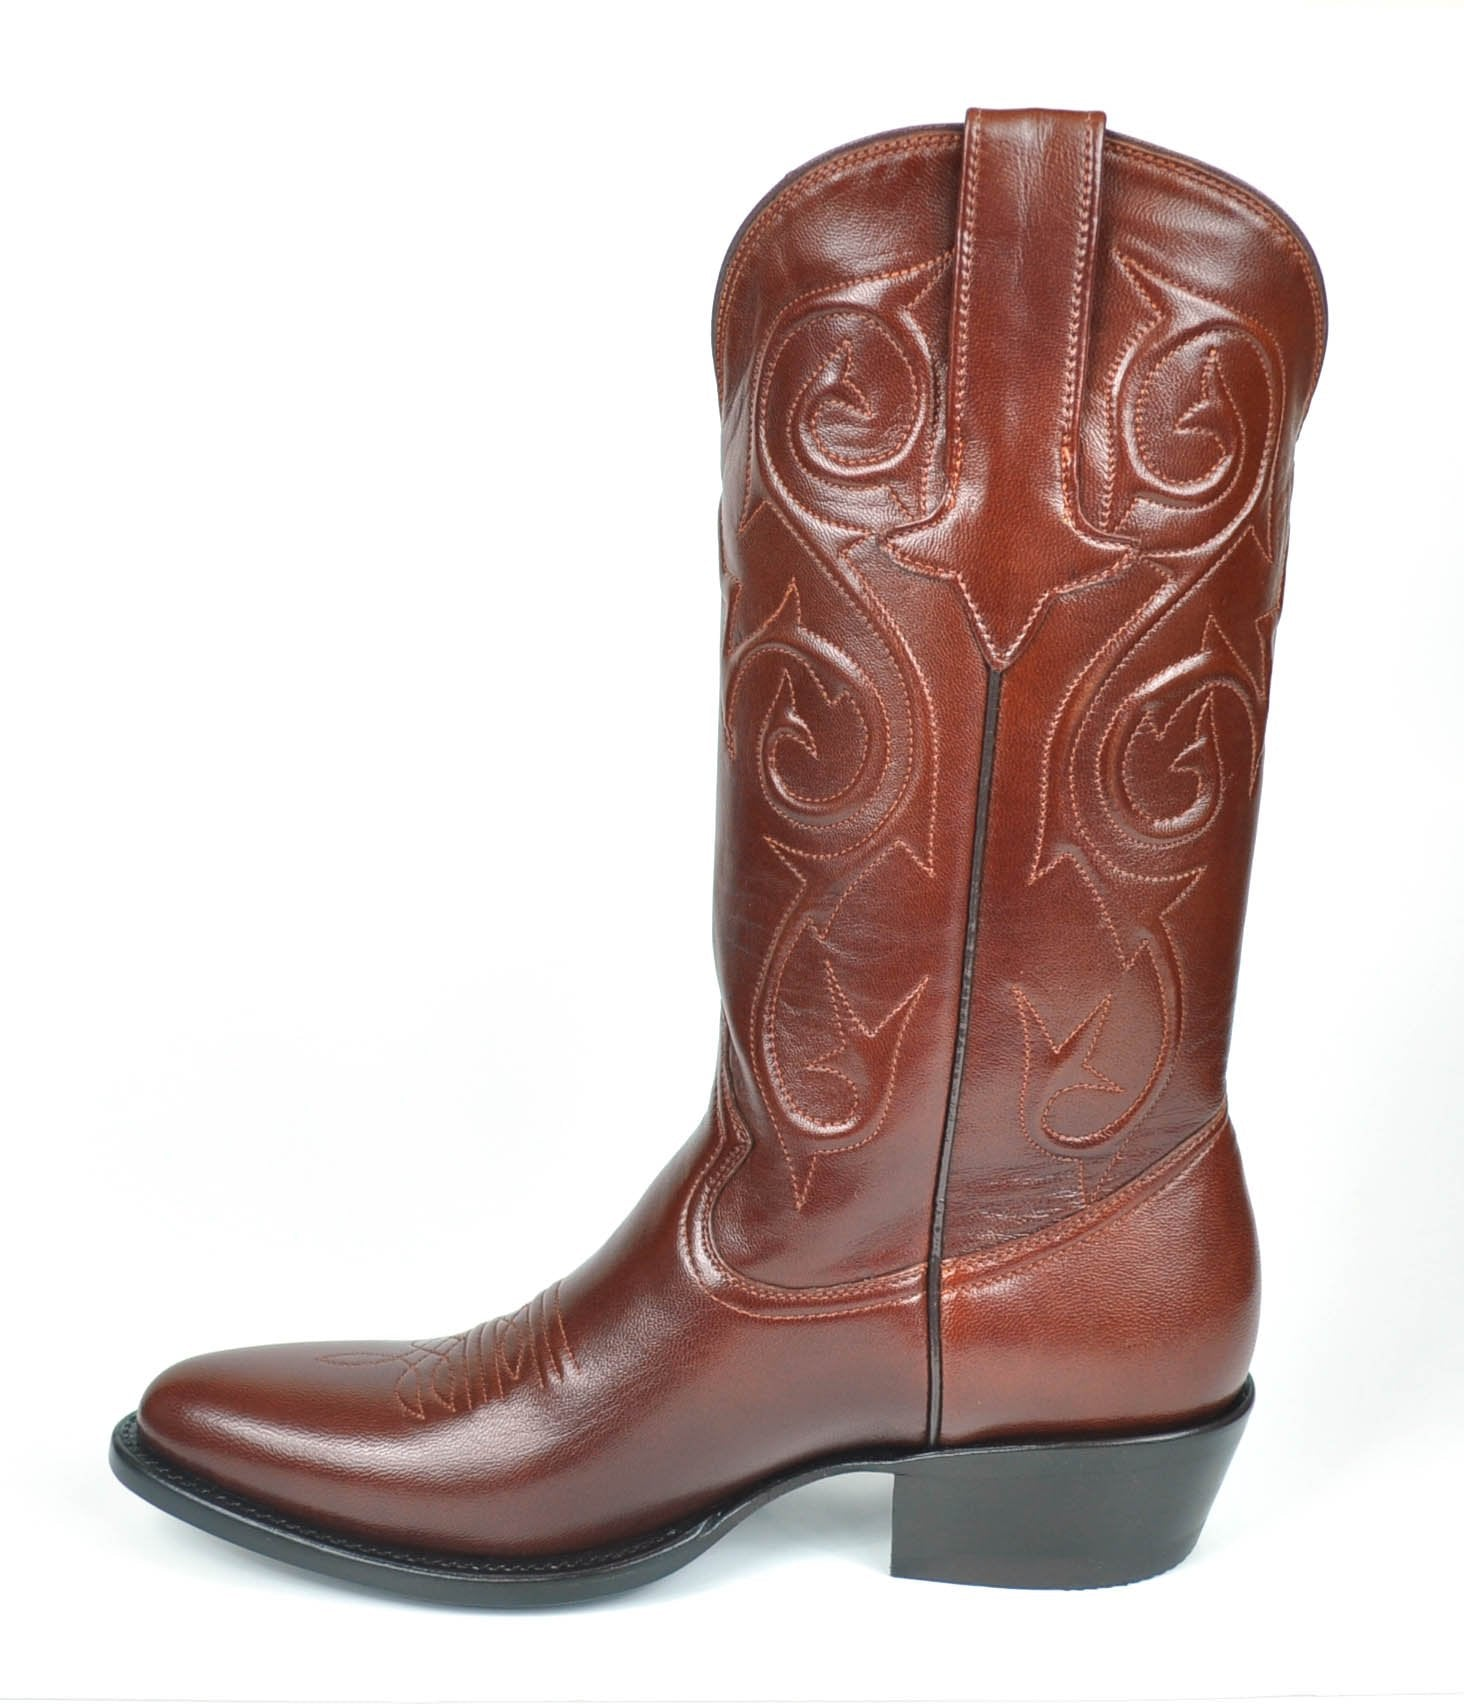 brand new 7dd5a 3e821 Denton Goat Classic Western Boots -Budapest Brown